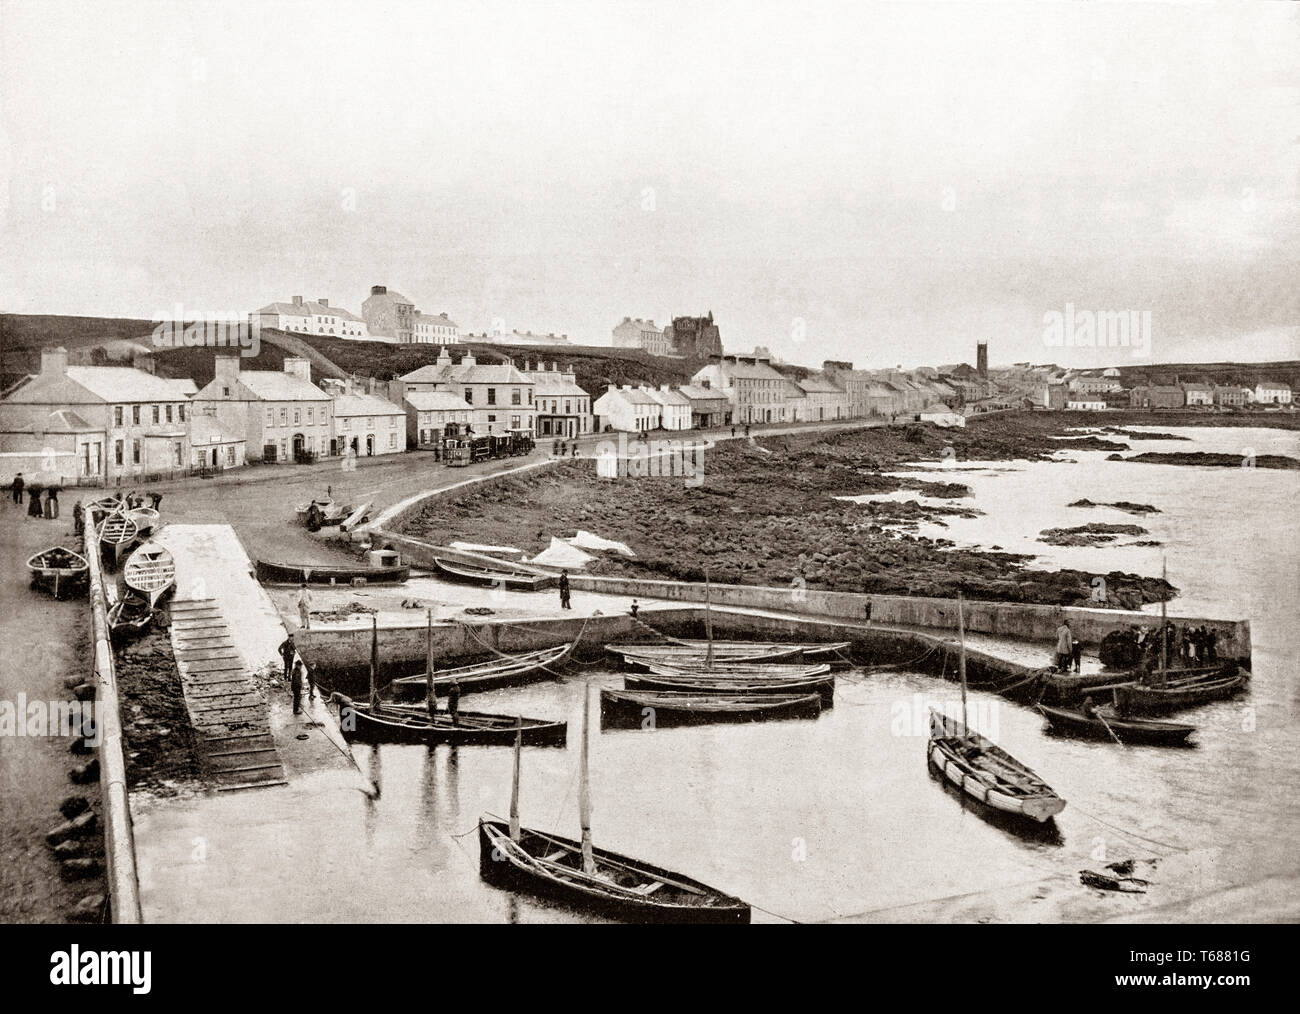 A 19th Century view of Portstewart, a small seaside resort in County Derry, aka County Londonderry, in Northern Ireland. Its harbour and scenic coastal paths form an Atlantic promenade leading to 2 miles of the golden Portstewart Strand. It developed into a modest size seaside resort in the mid 19th century under the influence of a local landlord, John Cromi, influenced greatly by the Sabbatarian sensitivities of the Cromies and the consequent resistance to a railway connection in the mid 19th century. - Stock Image